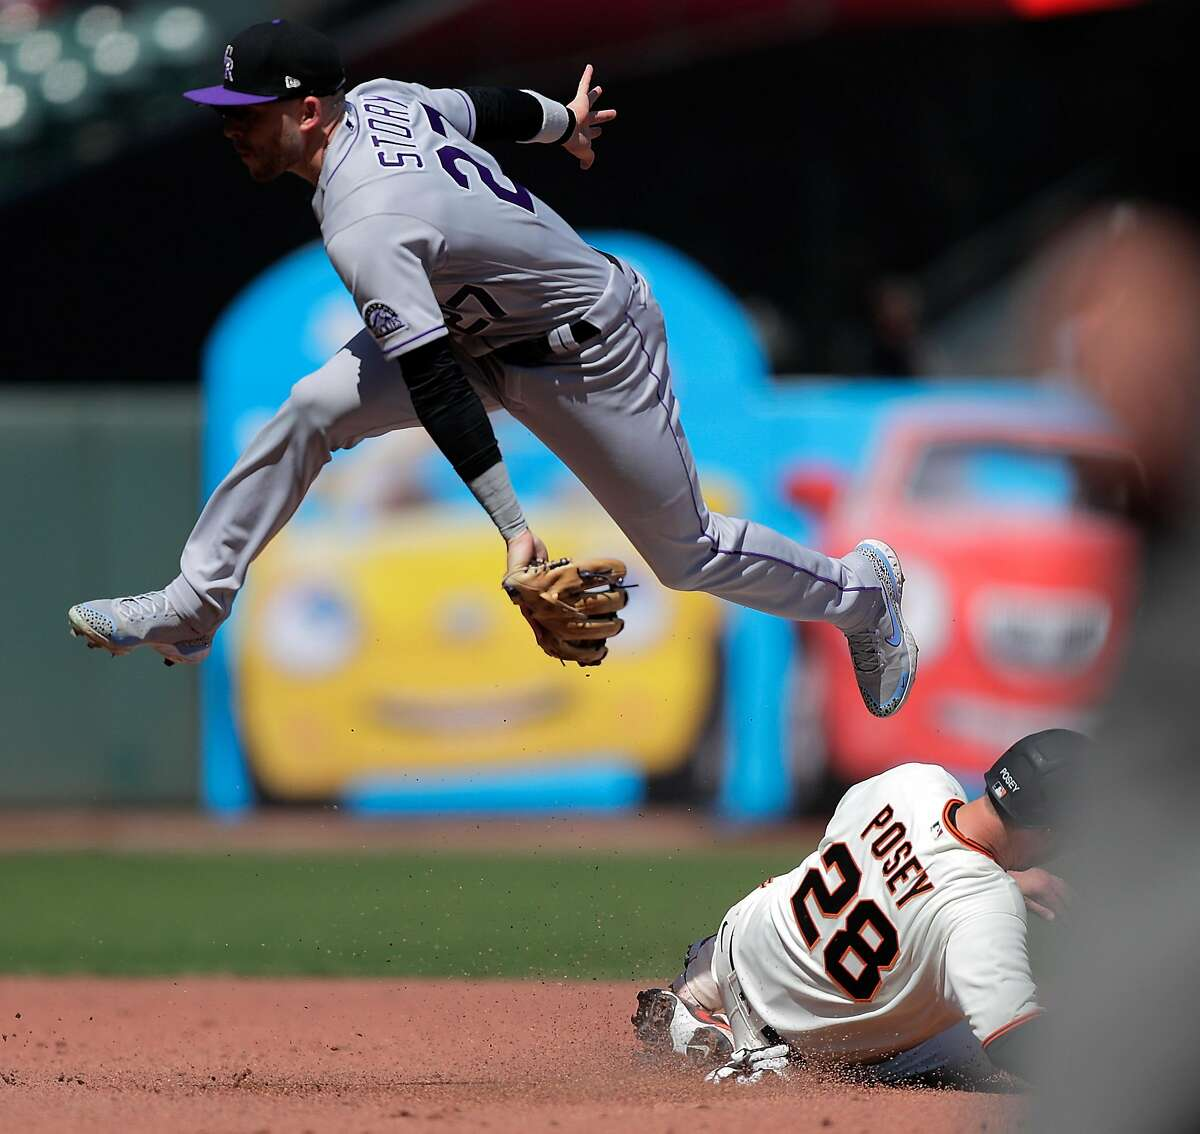 Trevor Story (27) goes airborne to avoid a sliding Buster Posey (28) at second base on a fielder's choice in the fifth inning as the San Francisco Giants played the Colorado Rockies at Oracle Park in San Francisco Calif., on Friday, April 9, 2021.